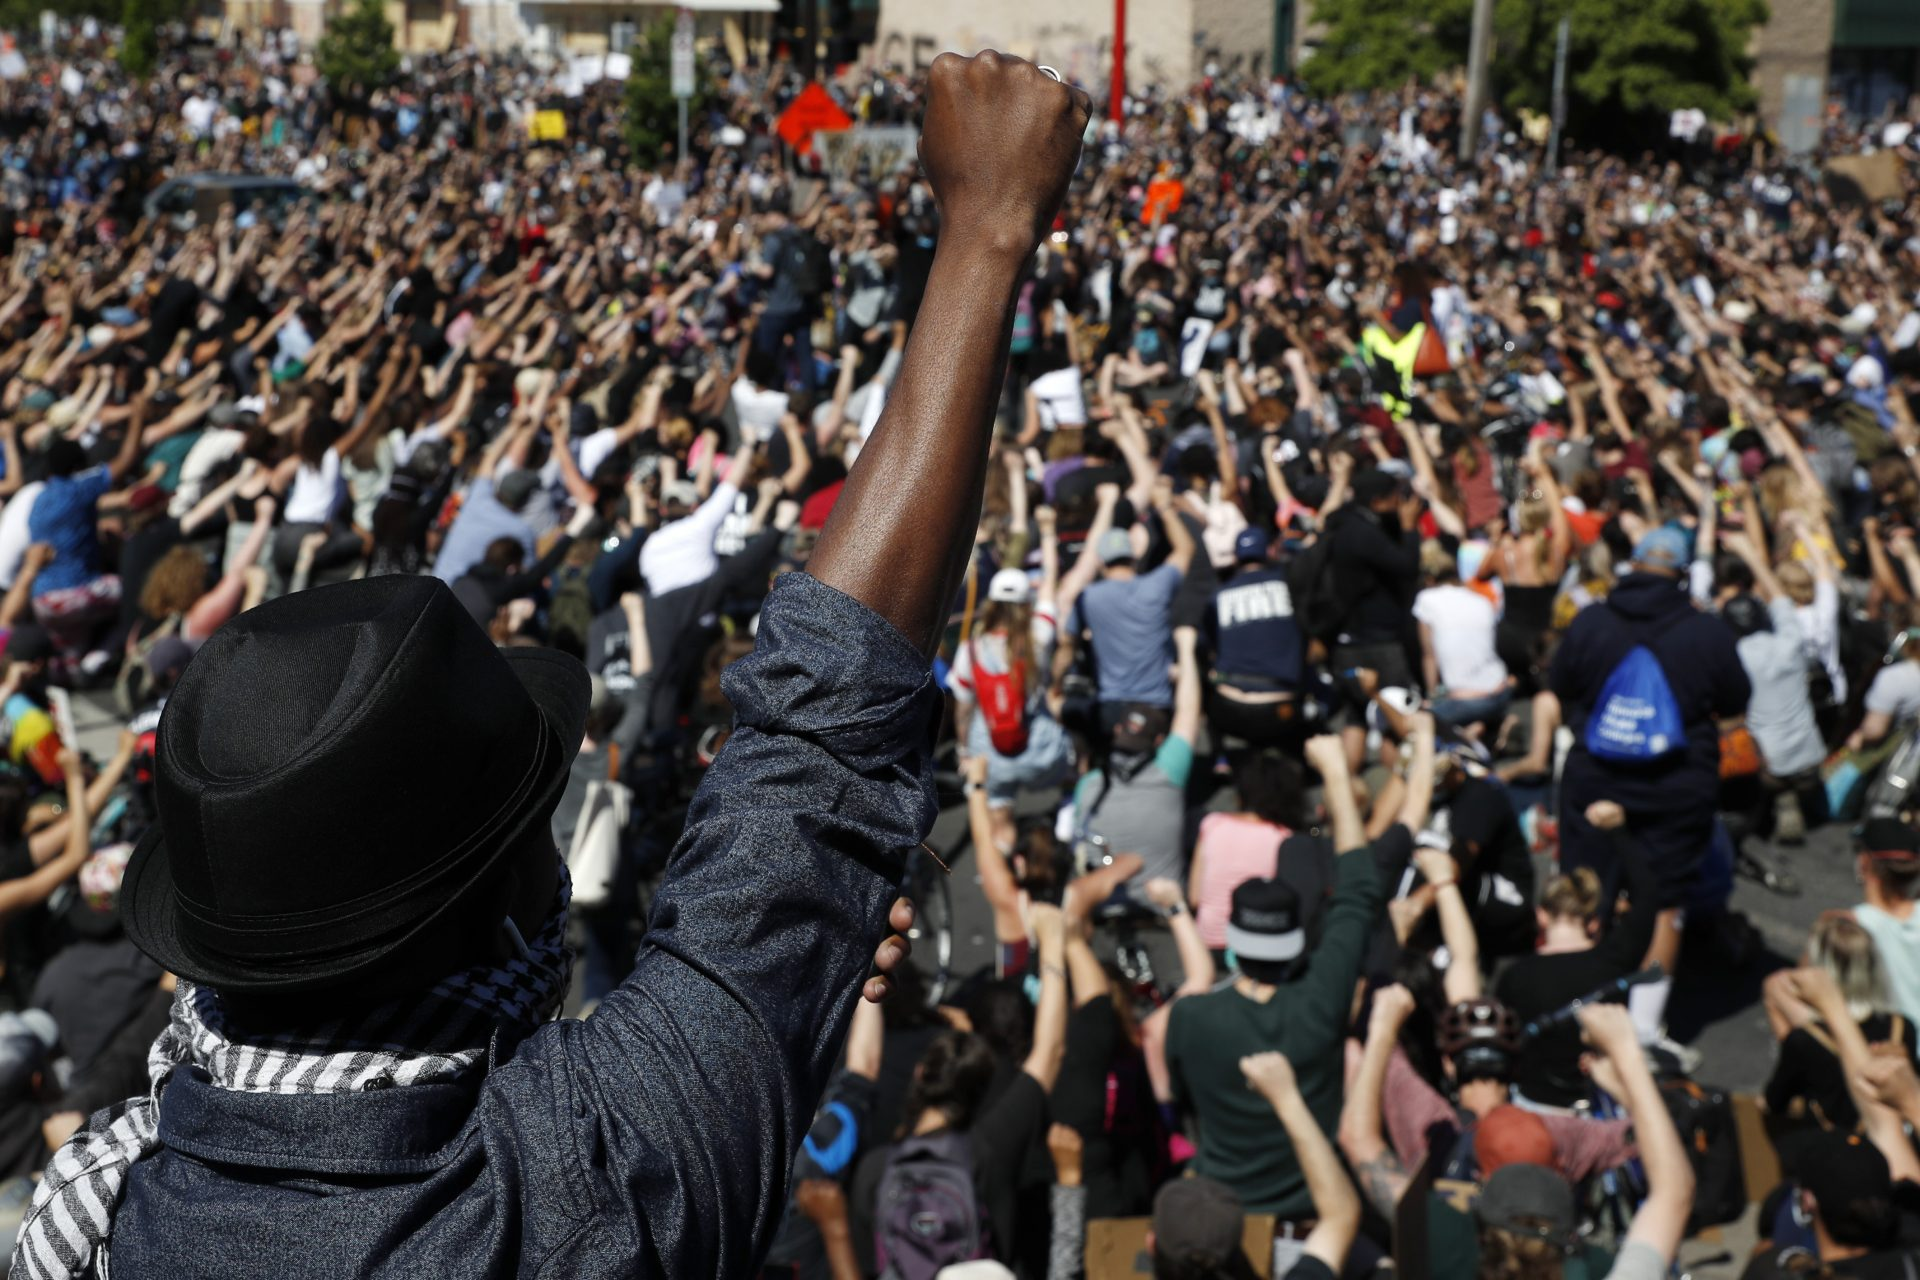 Protesters gather Saturday, May 30, 2020, in Minneapolis. Protests continued following the death of George Floyd, a black man who was killed in police custody in Minneapolis on May 25.